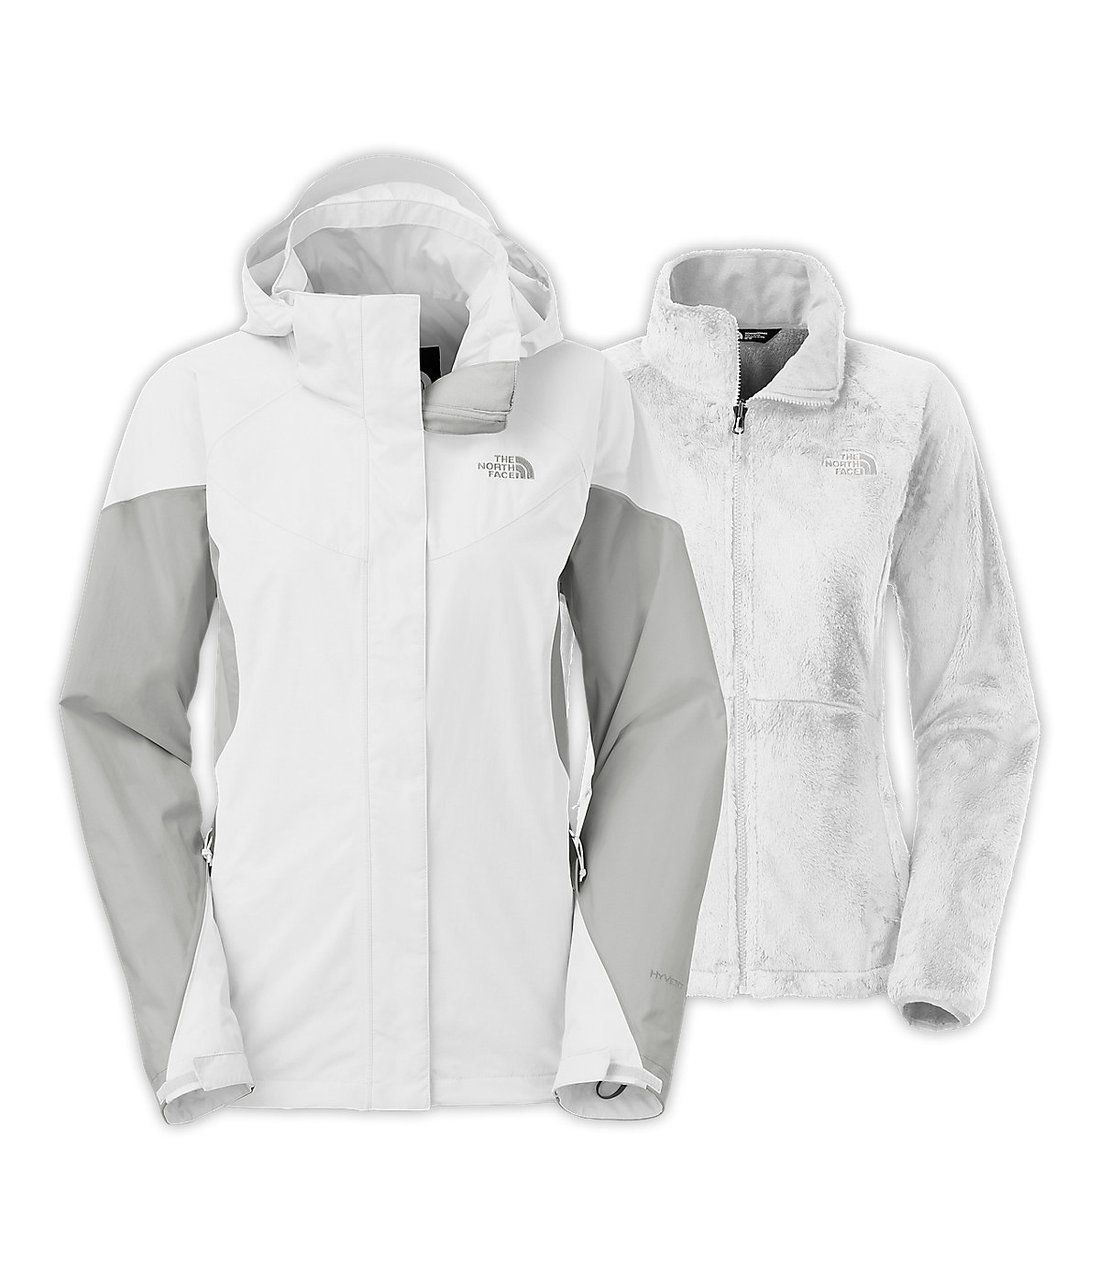 d6dba9481 North Face Women's Boundary Triclimate Jacket in TNF White/High Rise ...